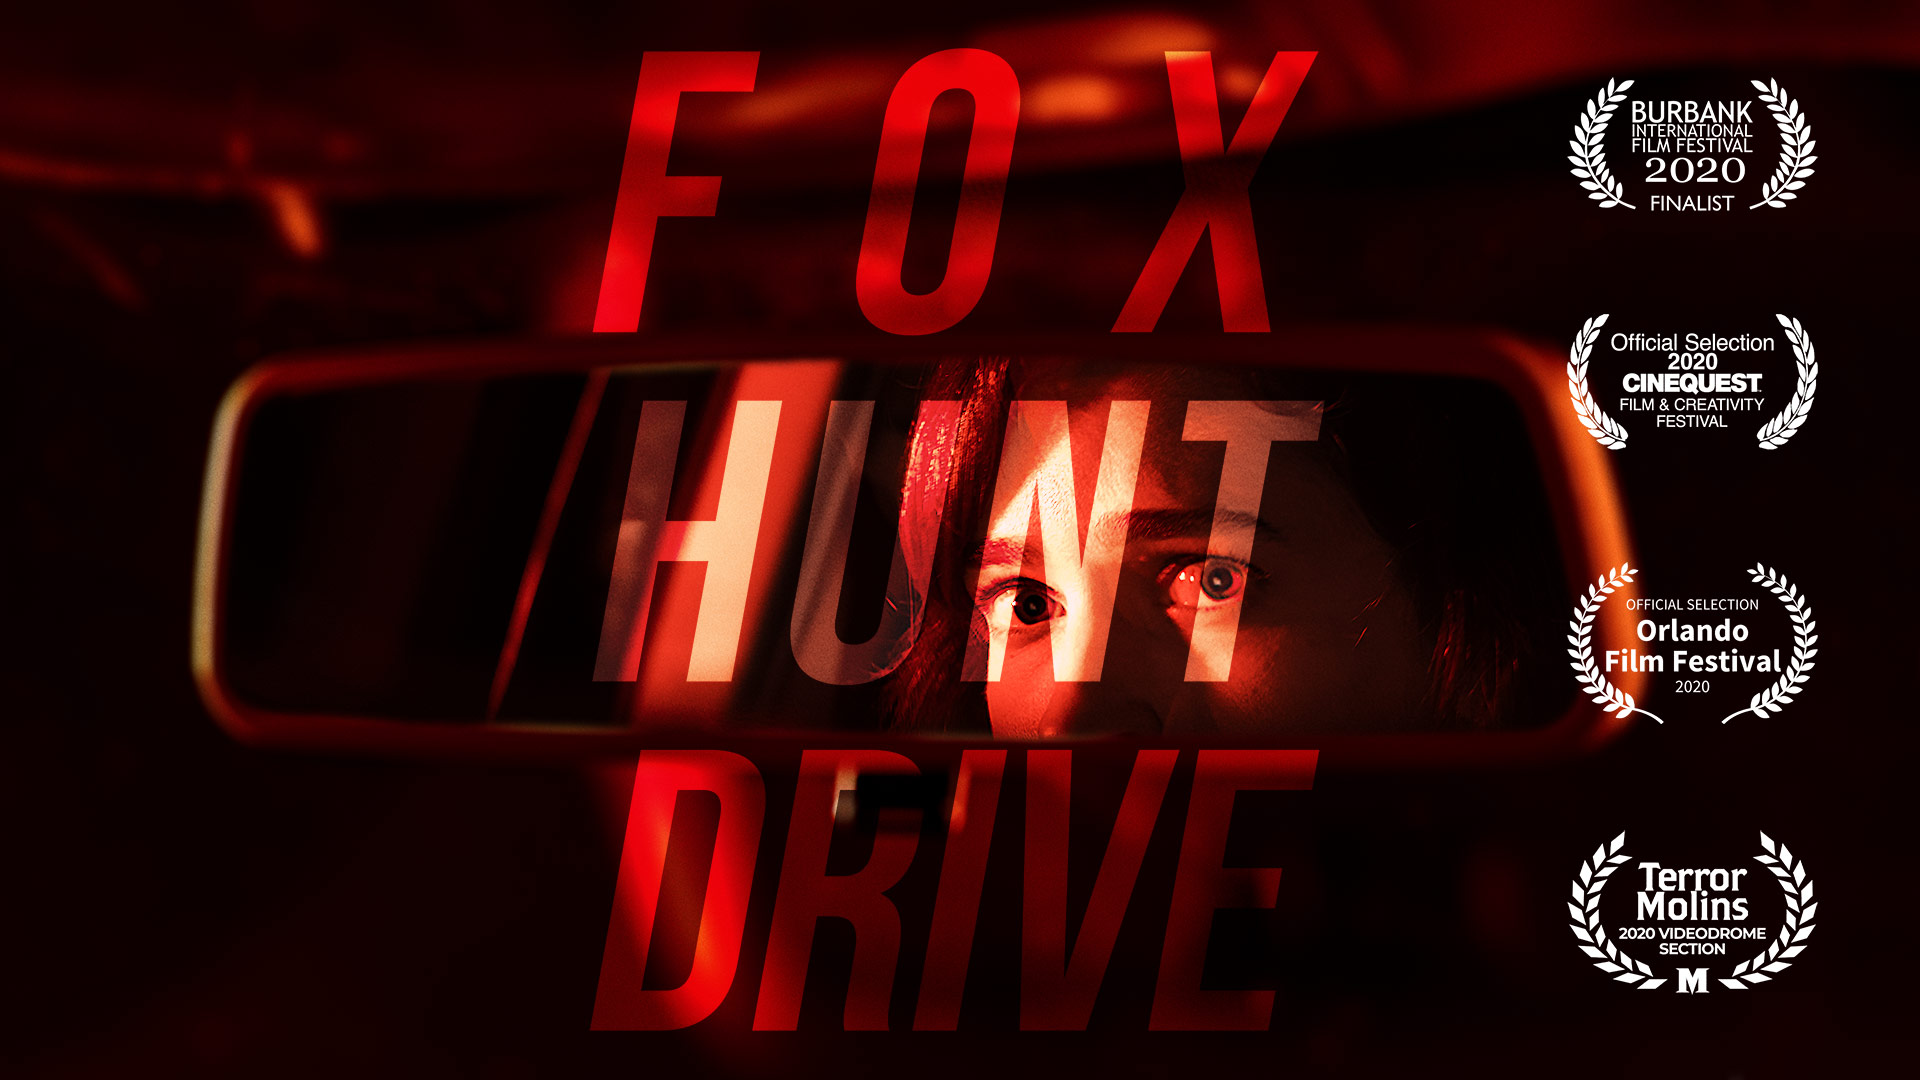 Fox Hunt Drive Movie Title